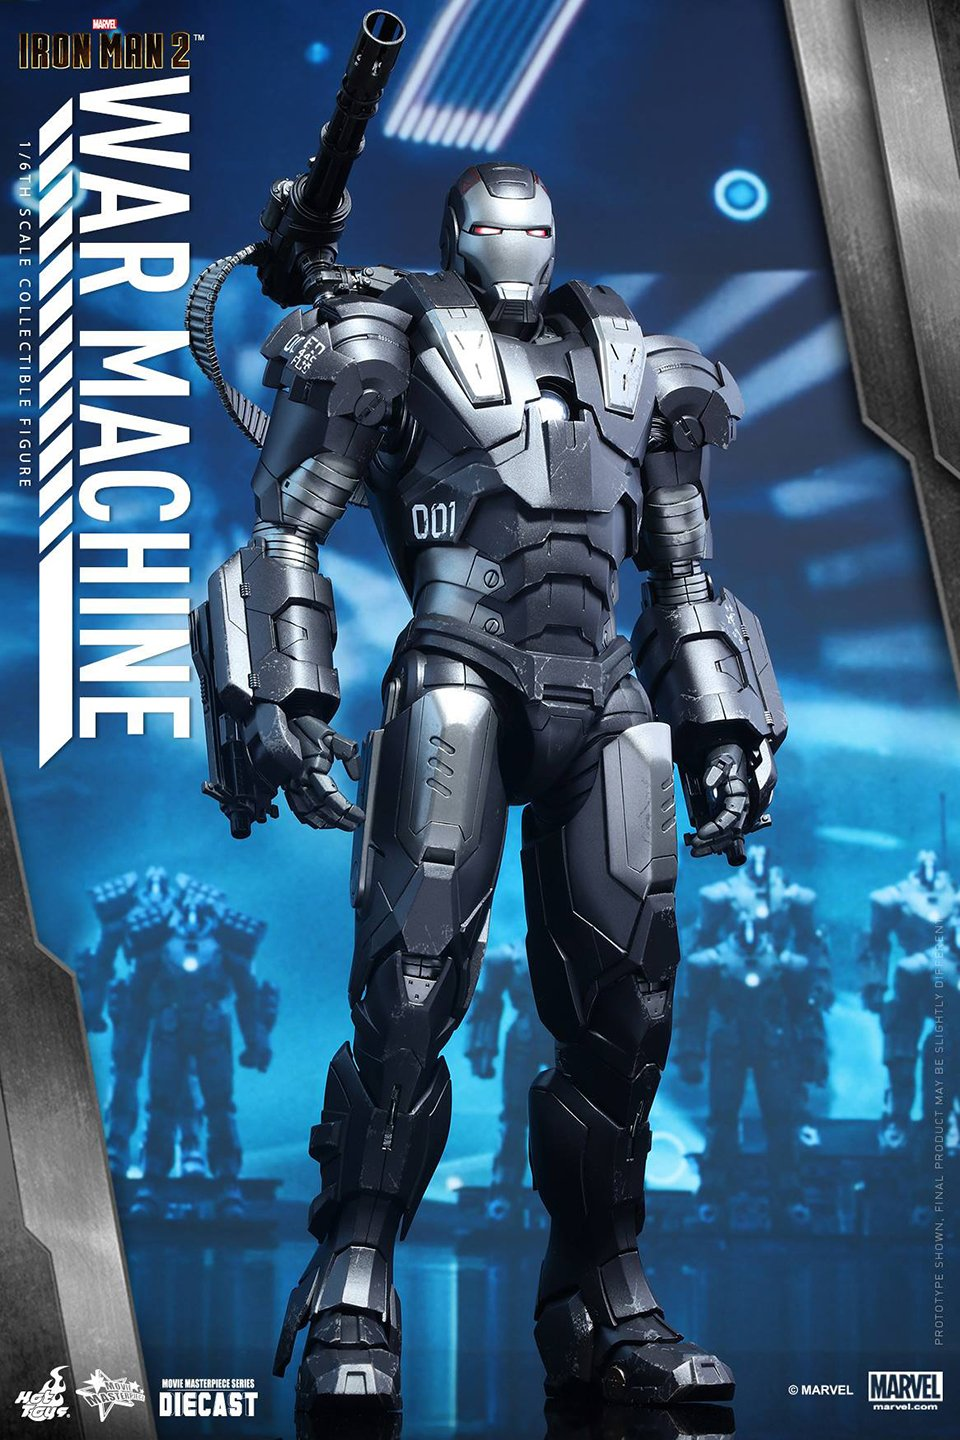 Hot Toys Iron Man 2 War Machine Sixth Scale Die-cast Figure